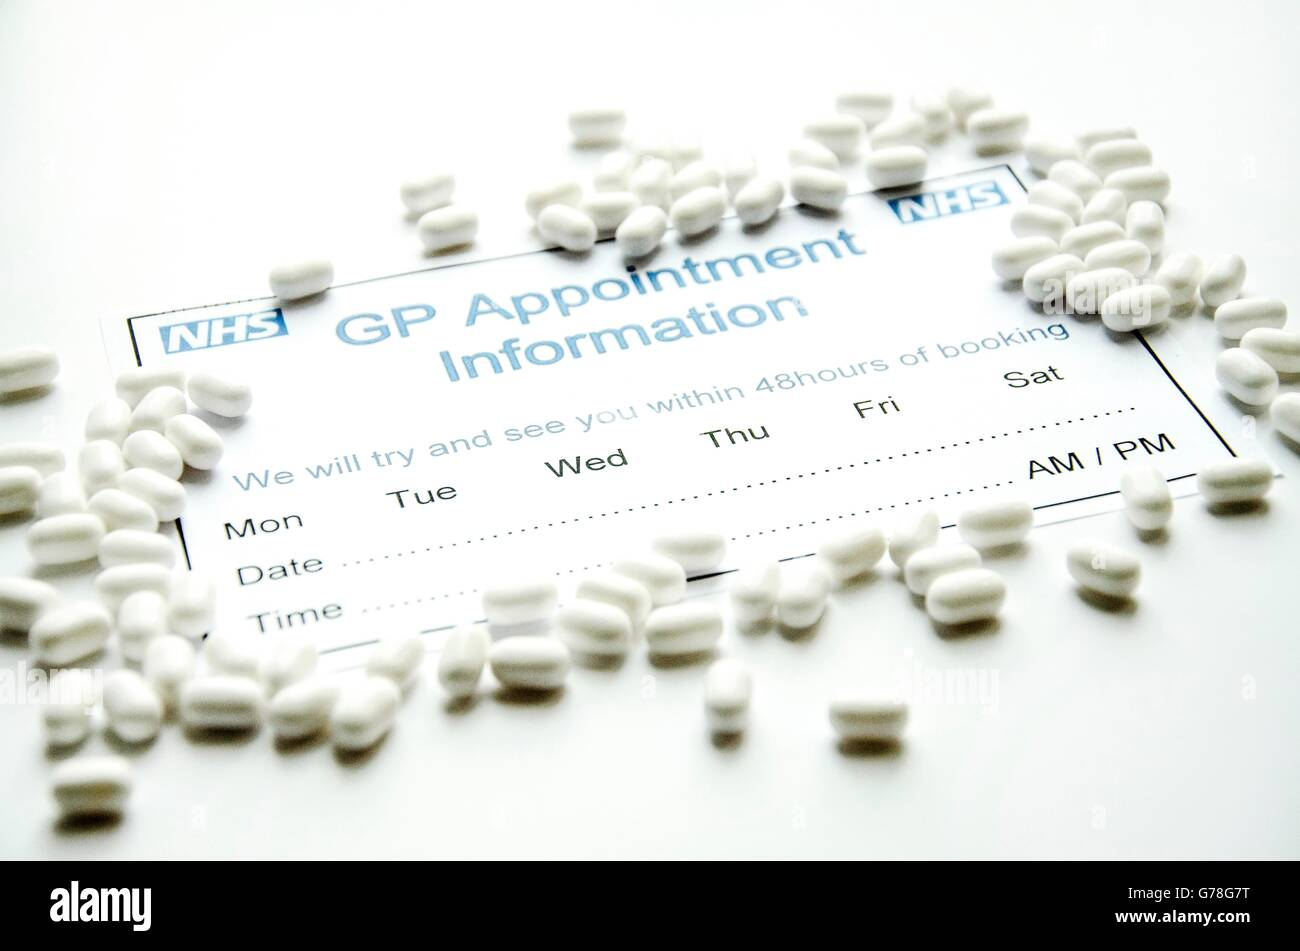 gp appointment slip for nhs with pills stock photo 107753180 alamy